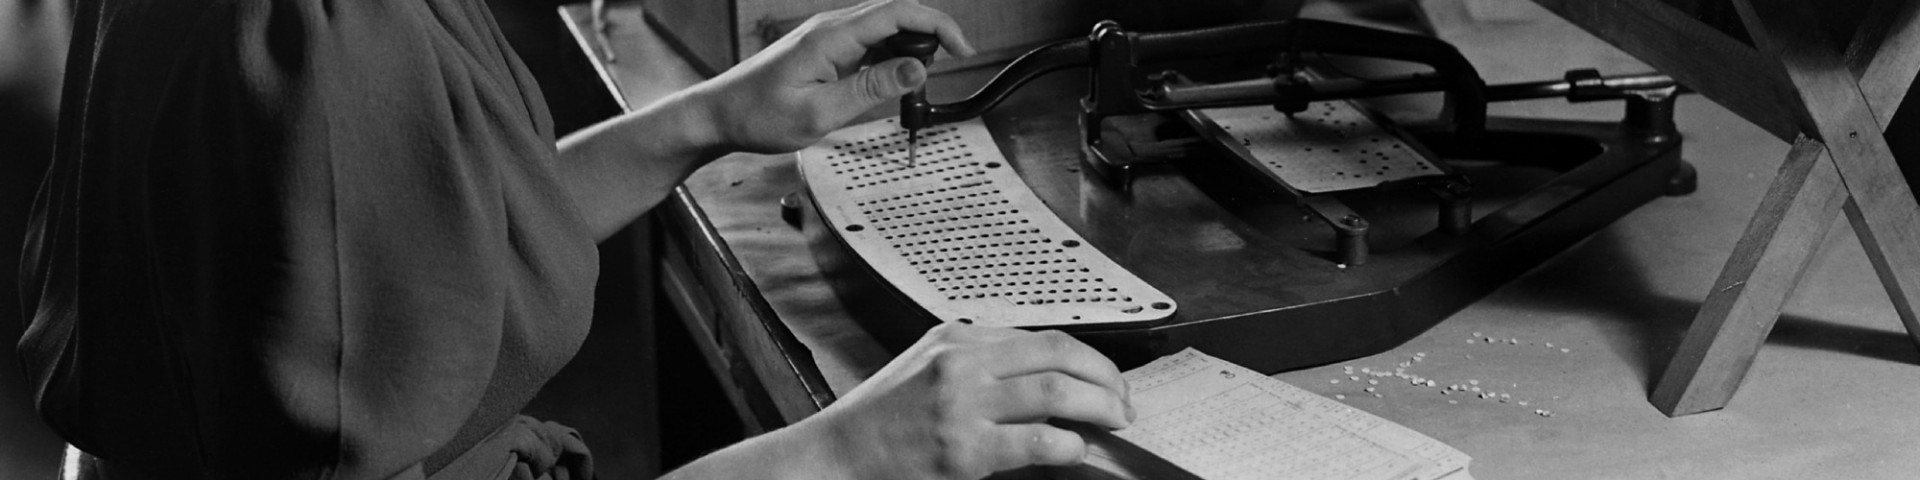 Bureaucracy, punch card machine operated by woman